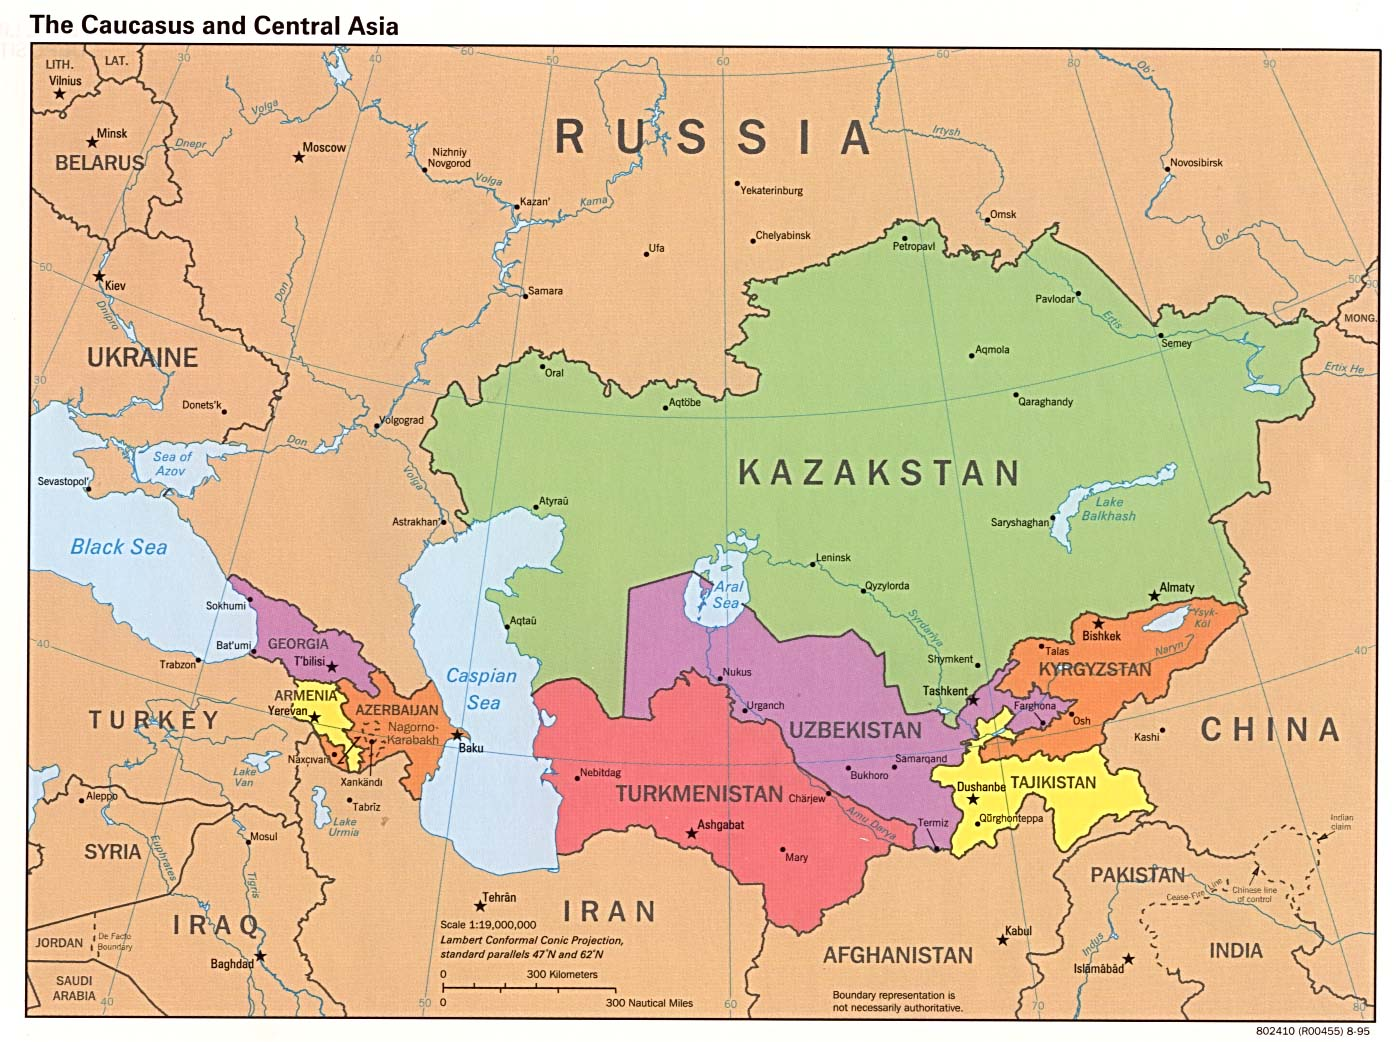 A map of the Caucasus region of former Soviet states